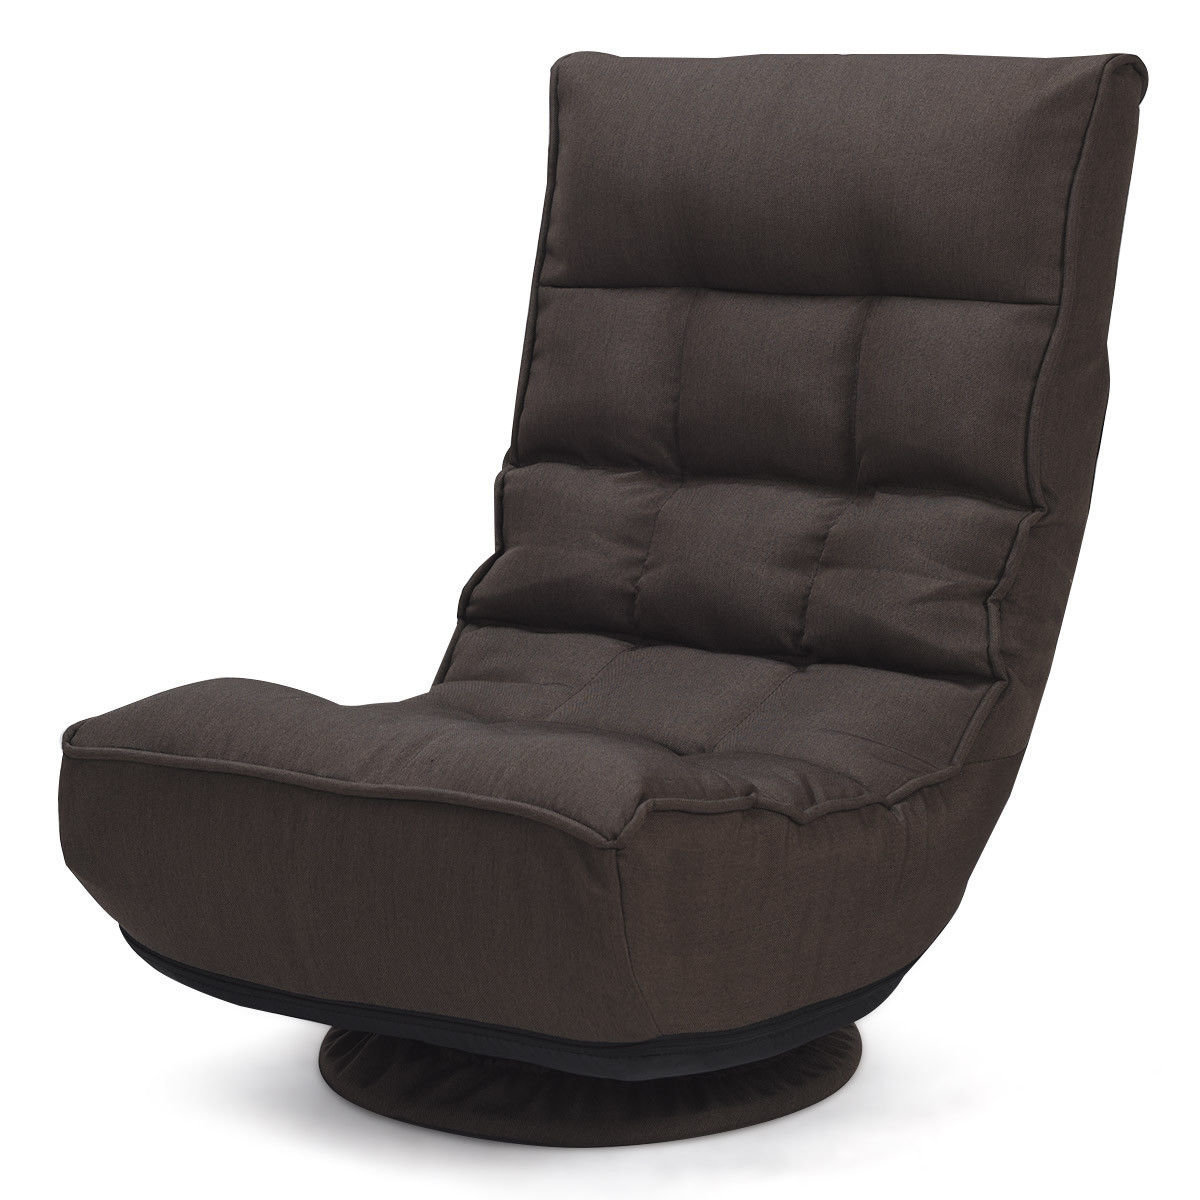 Ebern Designs Brentford Swivel Lounge Chair | Wayfair Regarding Decker Ii Fabric Swivel Rocker Recliners (Image 9 of 25)